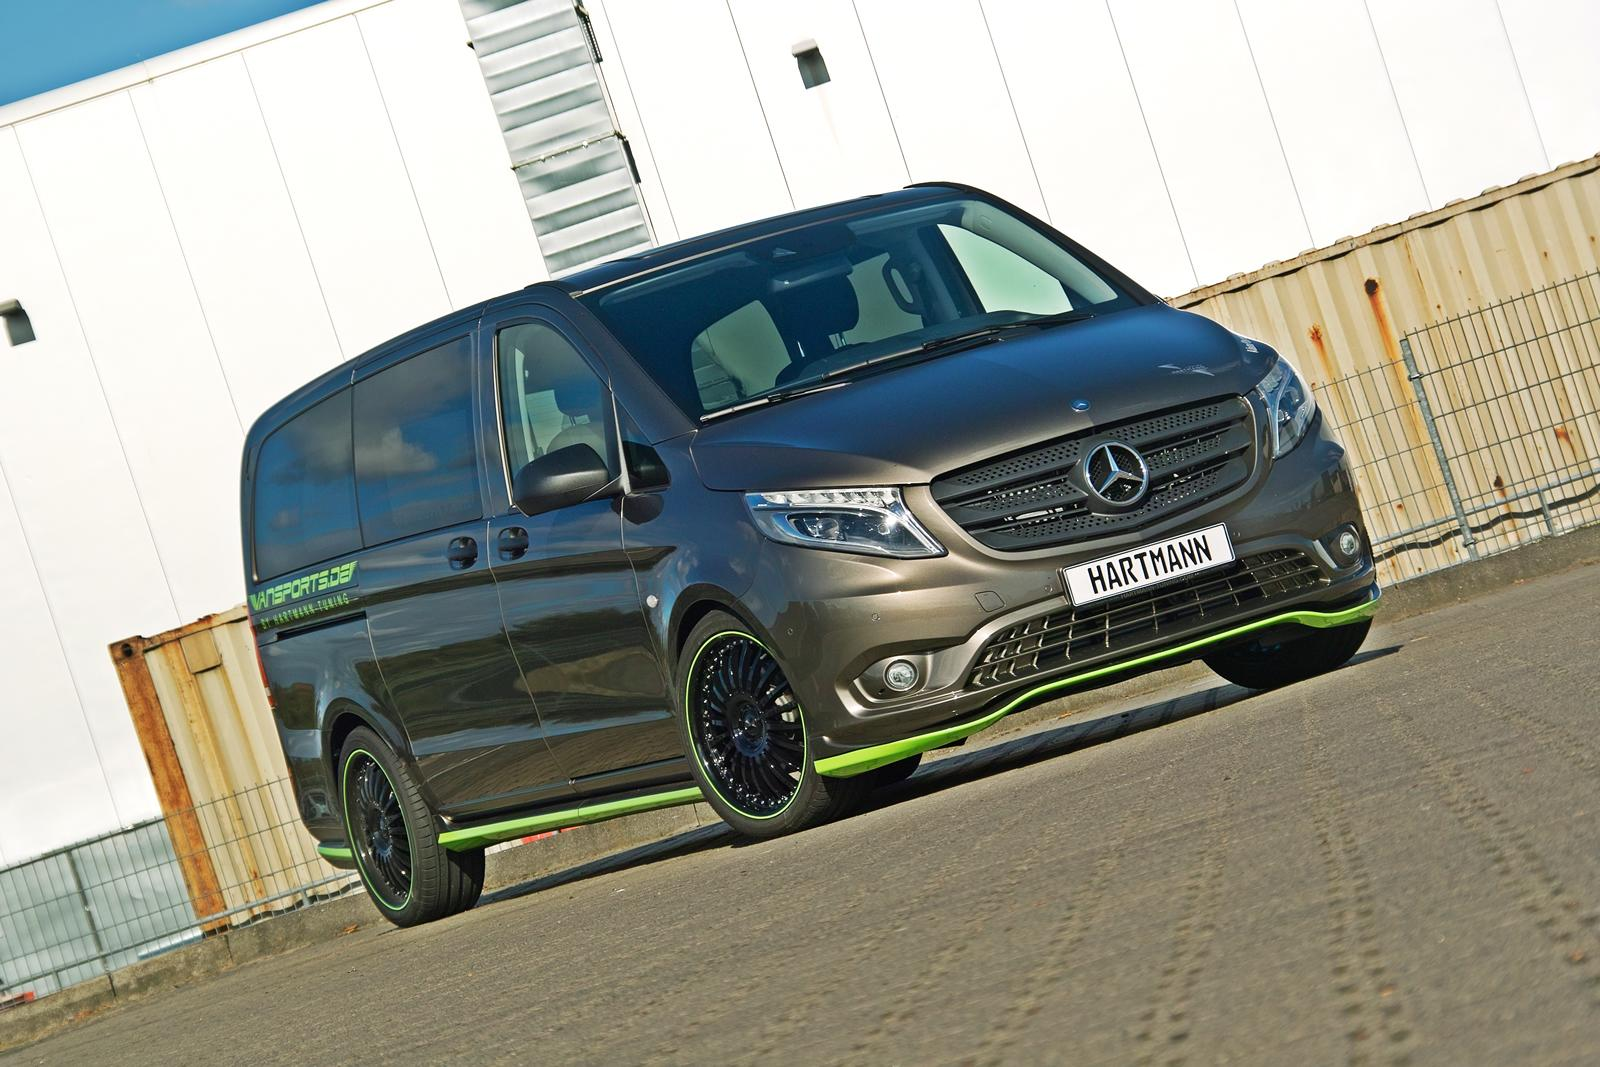 Hartmann Mercedes-Benz V-Class Will Scare Your Kids - autoevolution